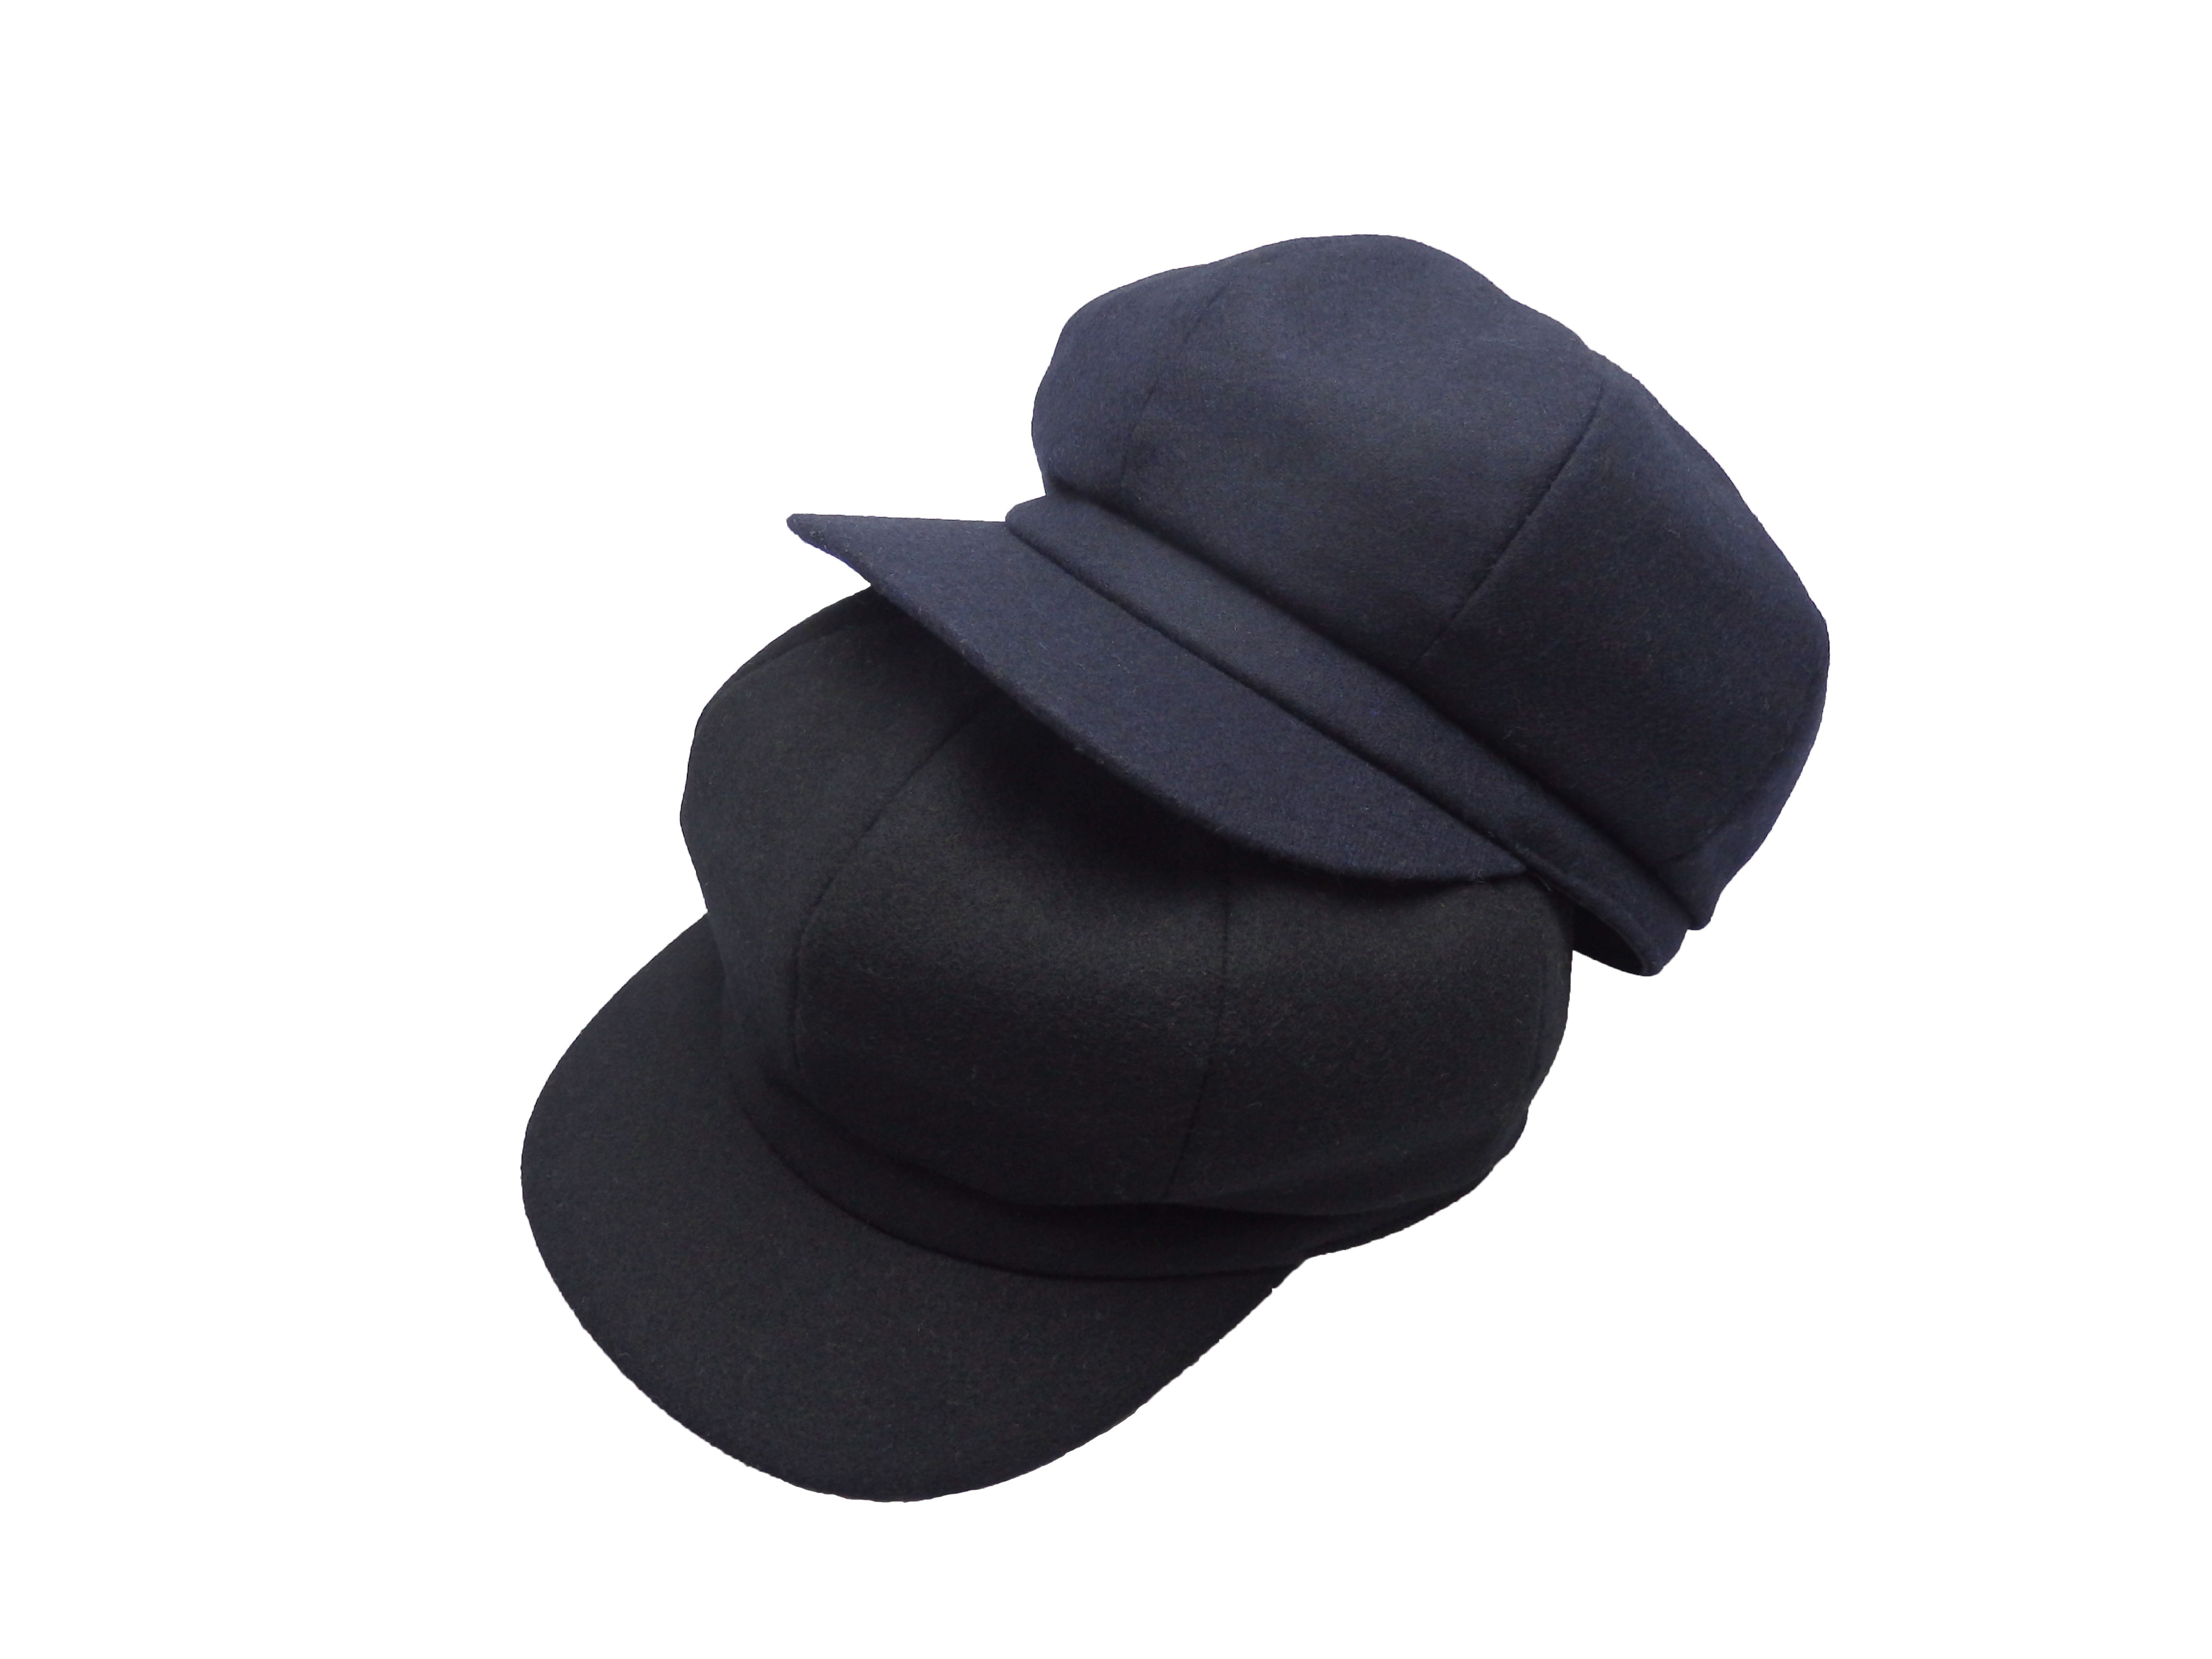 【KNOWLEDGE】 Wool standard casquette スタンダードキャスケット/ Made in Tokyo